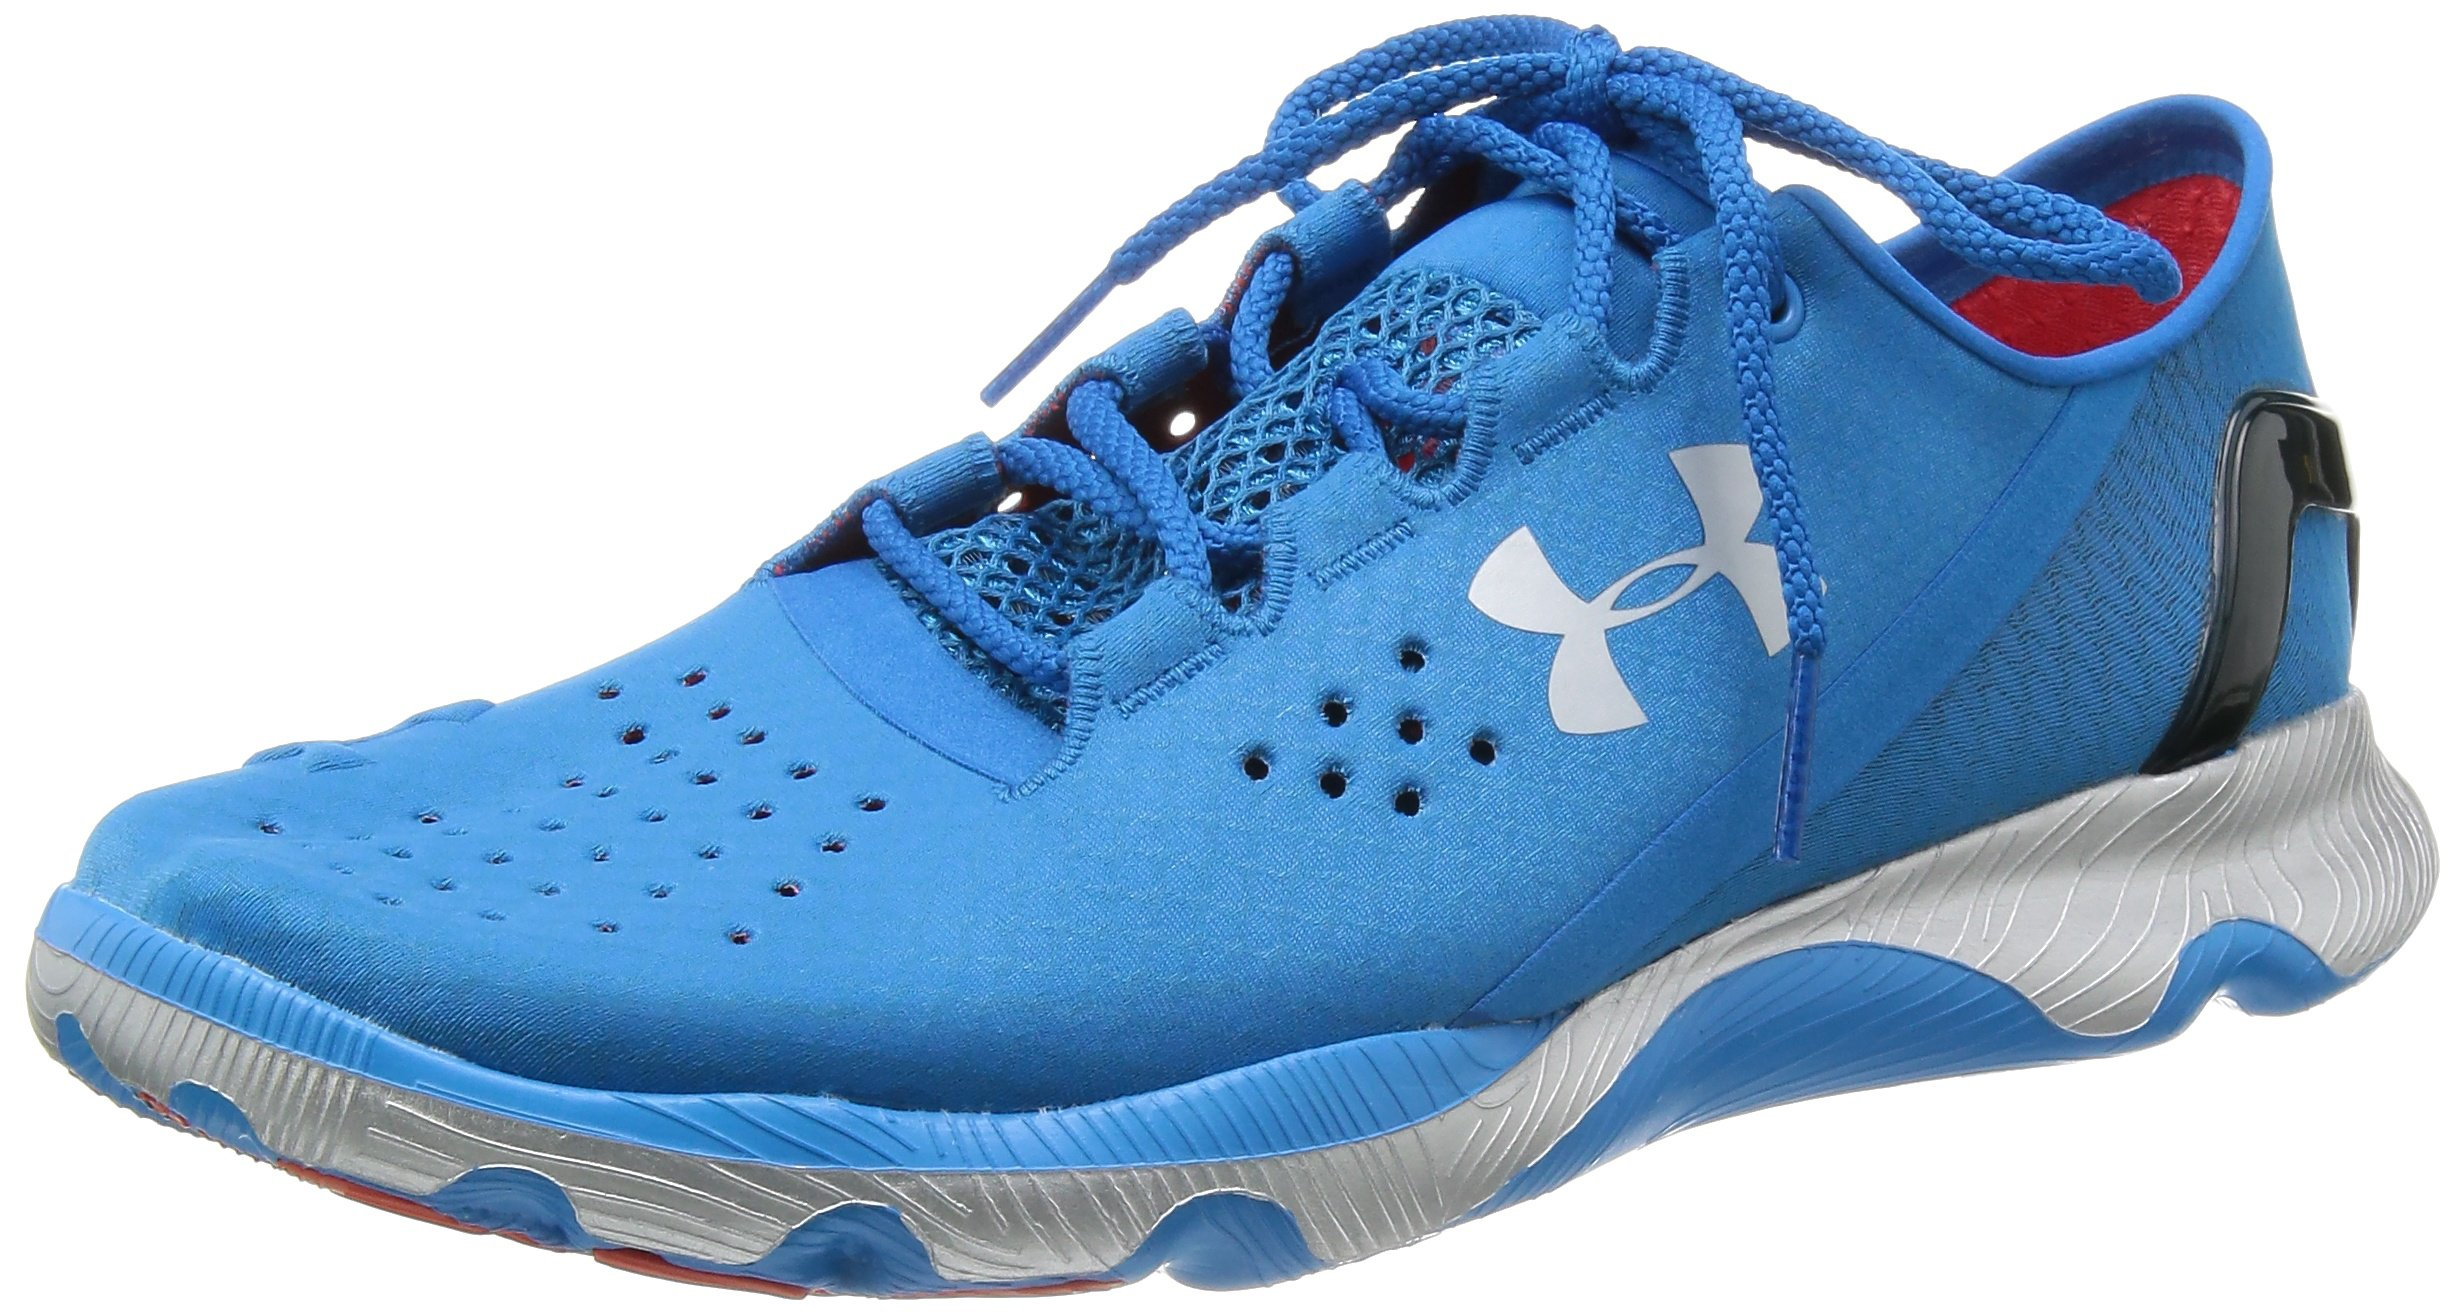 Under Armour Preform RN Running Shoes